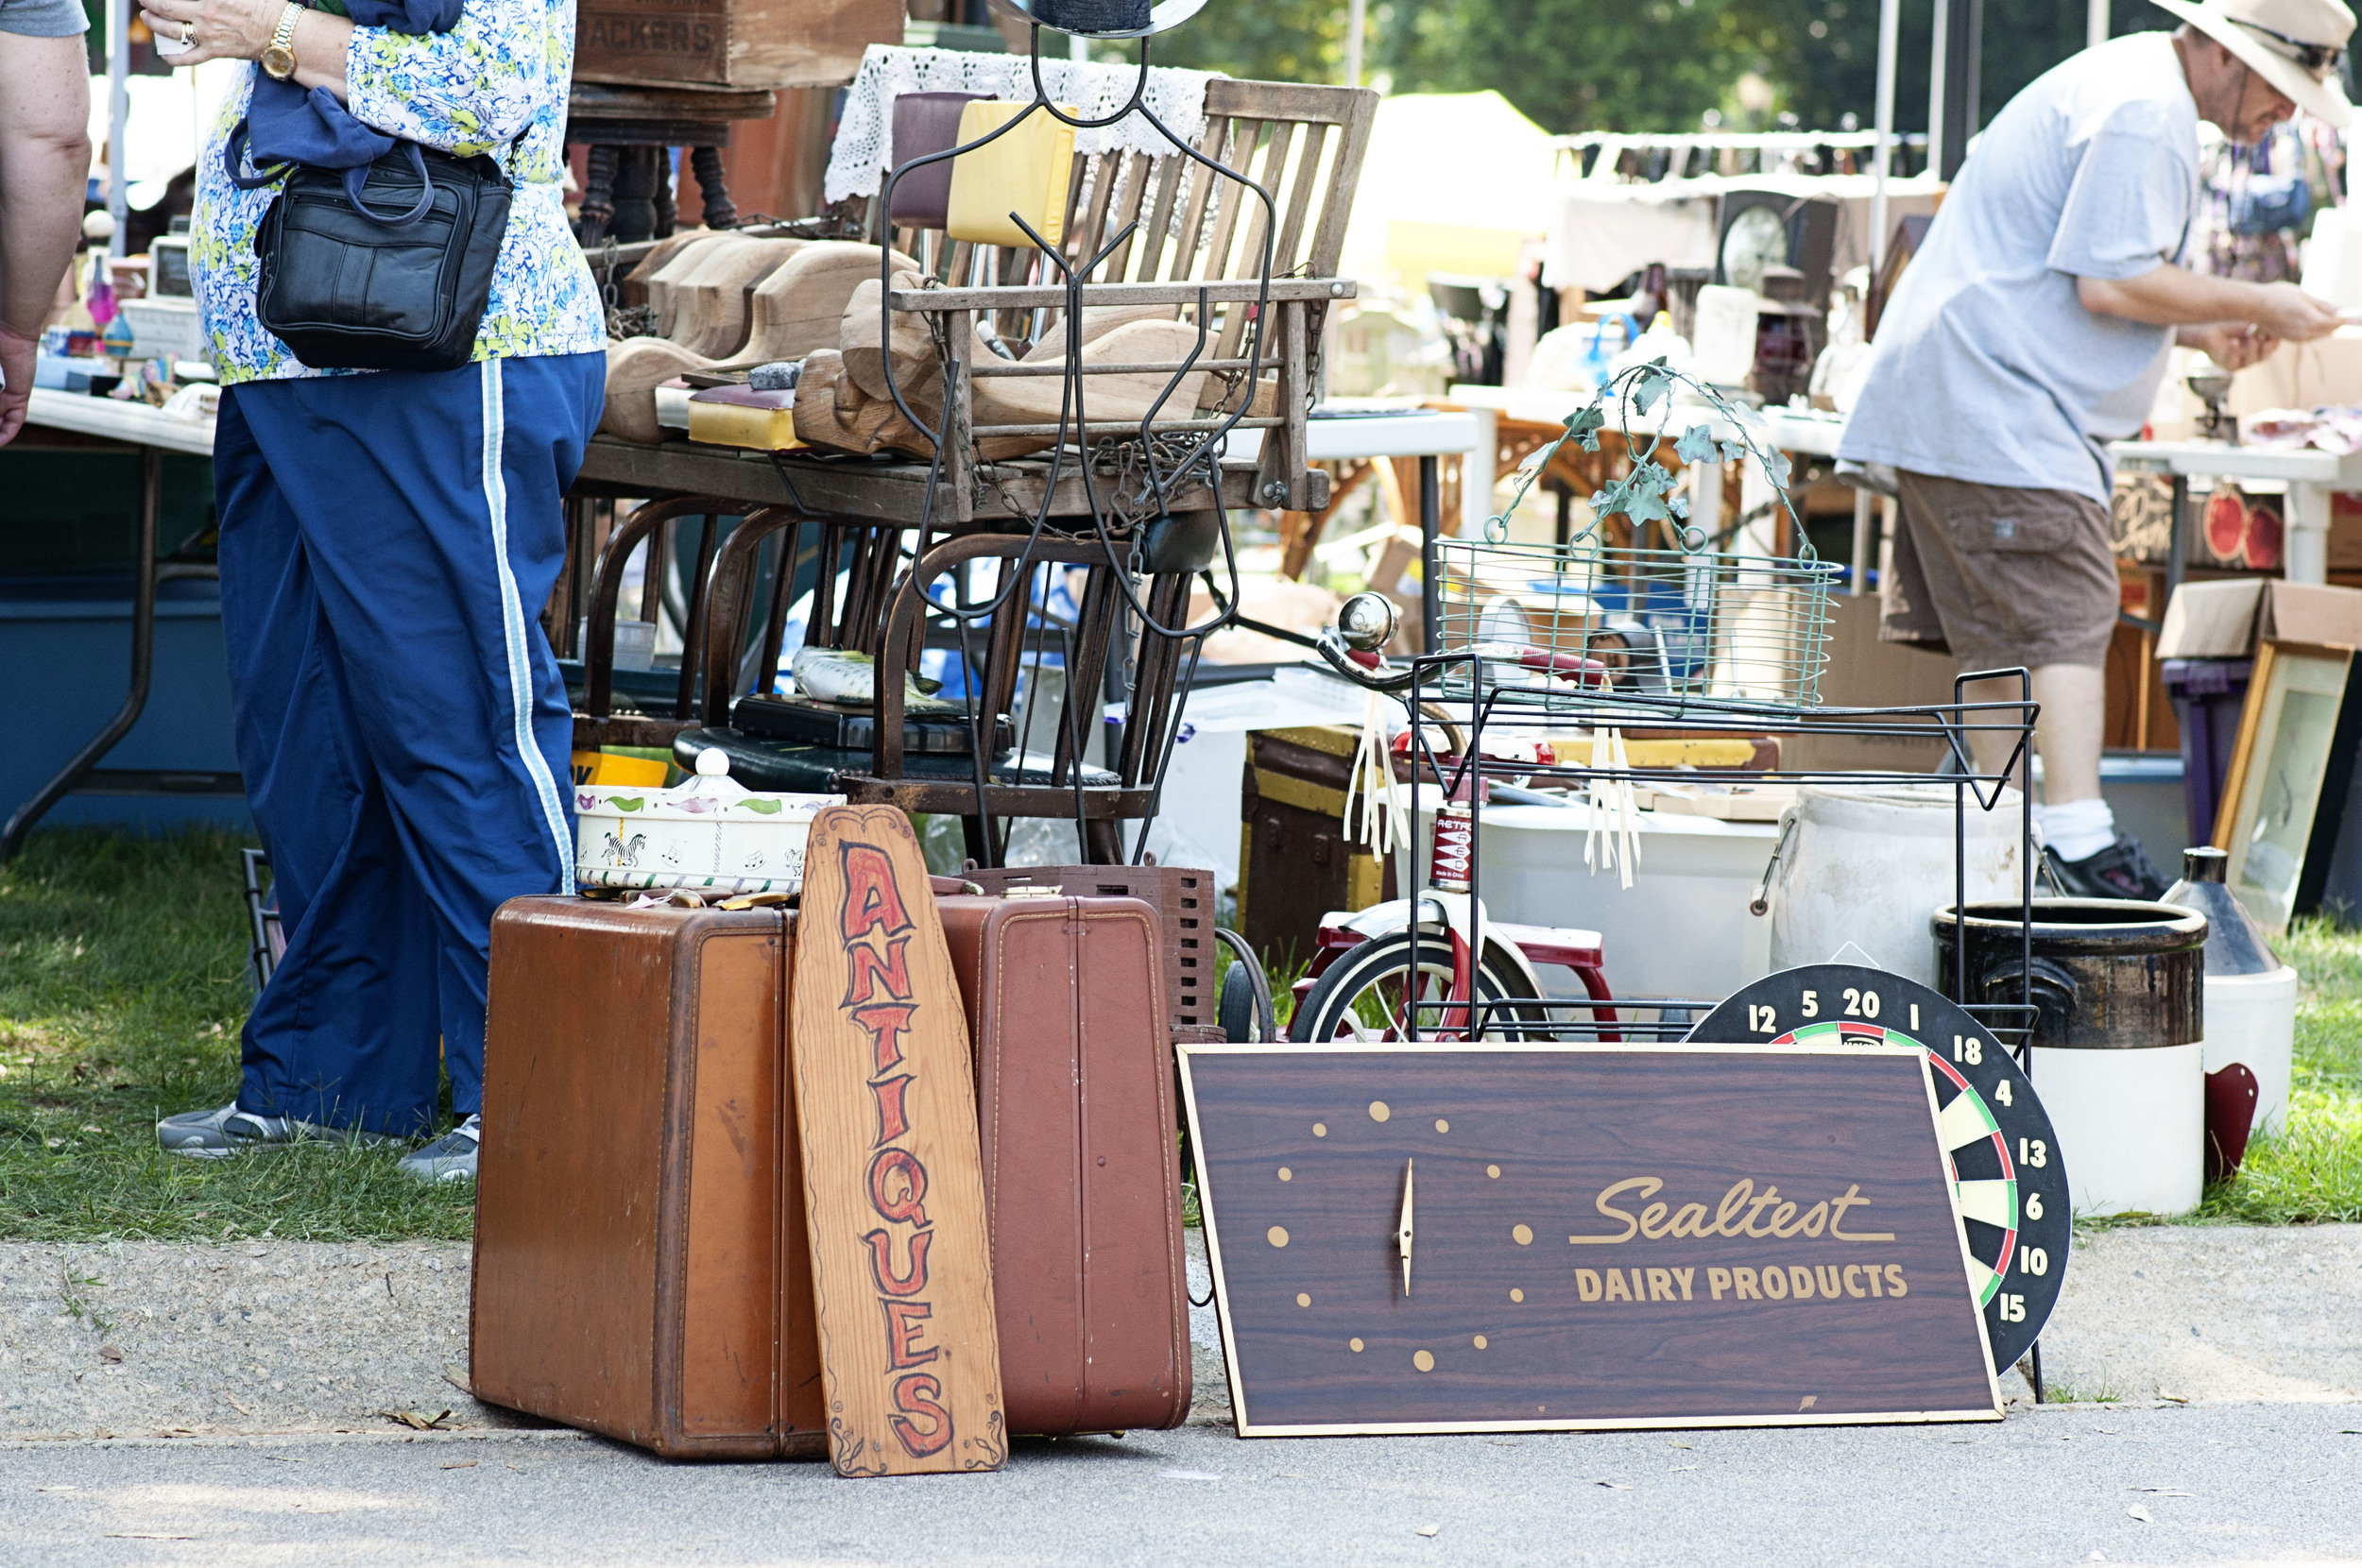 Raleigh Flea Market - North Carolina State Fairgrounds - NC - Chape Hill